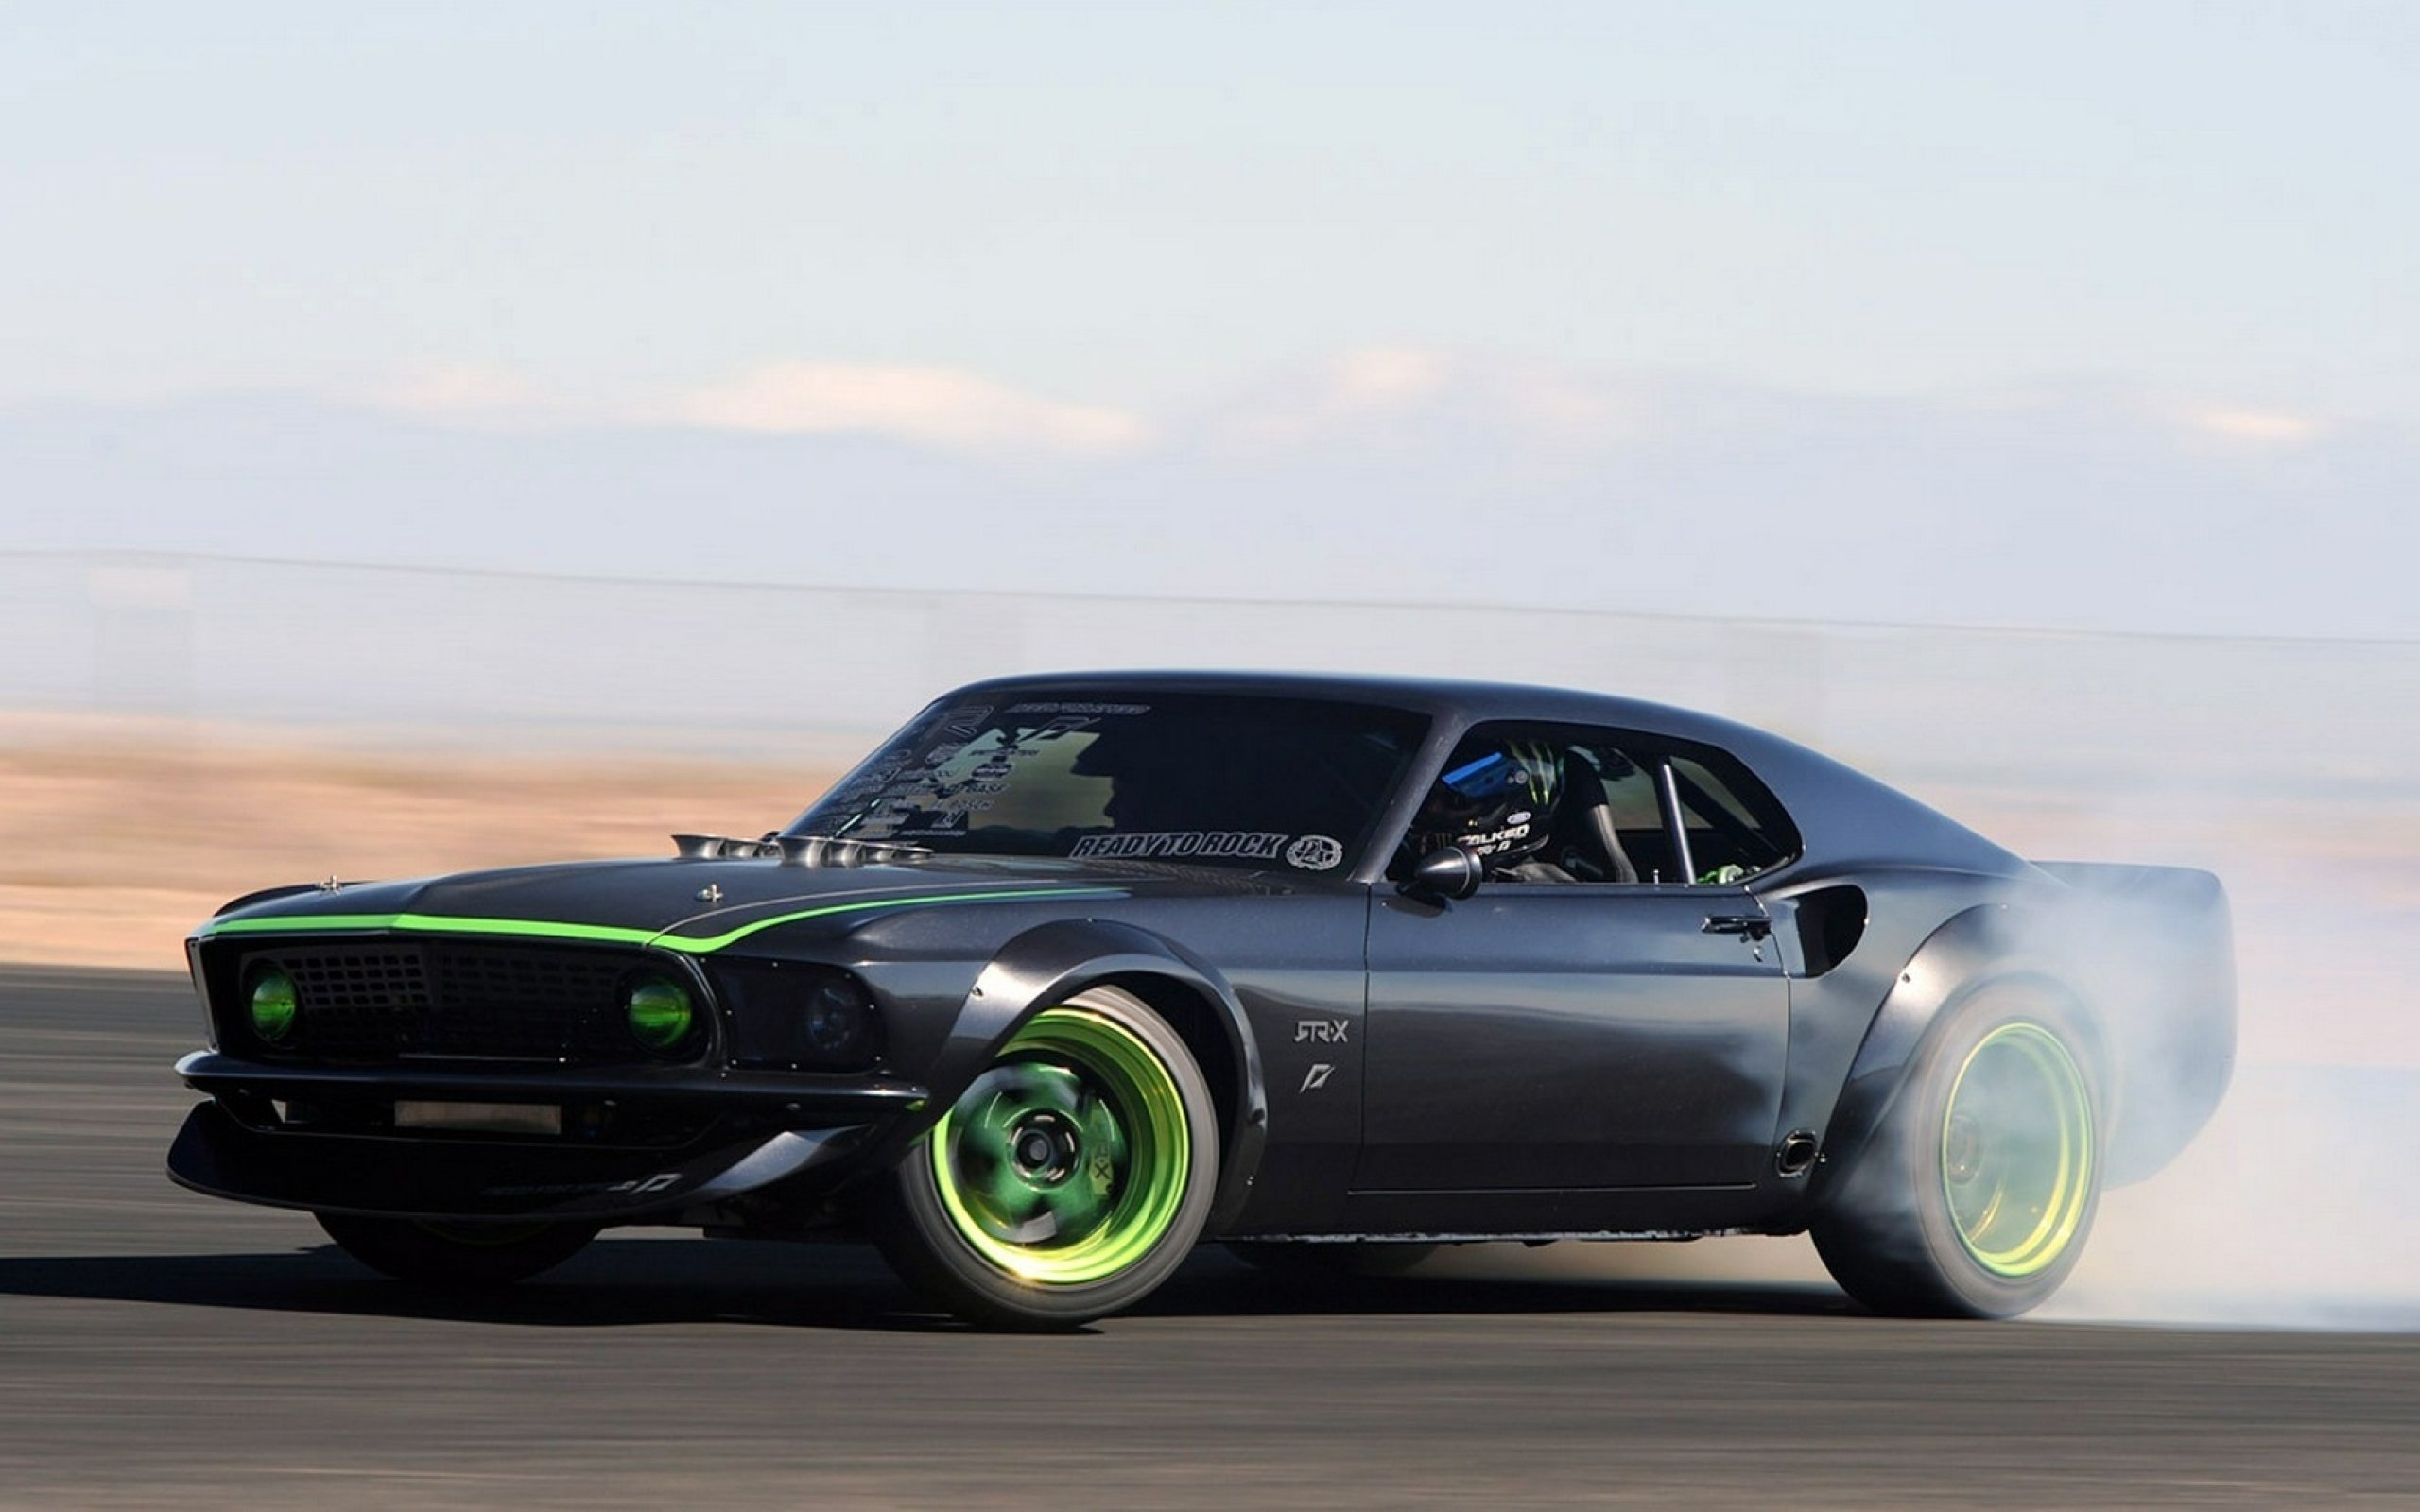 1969 ford mustang rtr x drift race racing hot rod rods muscle classic need speed rtr wallpaper 2560x1600 530037 wallpaperup